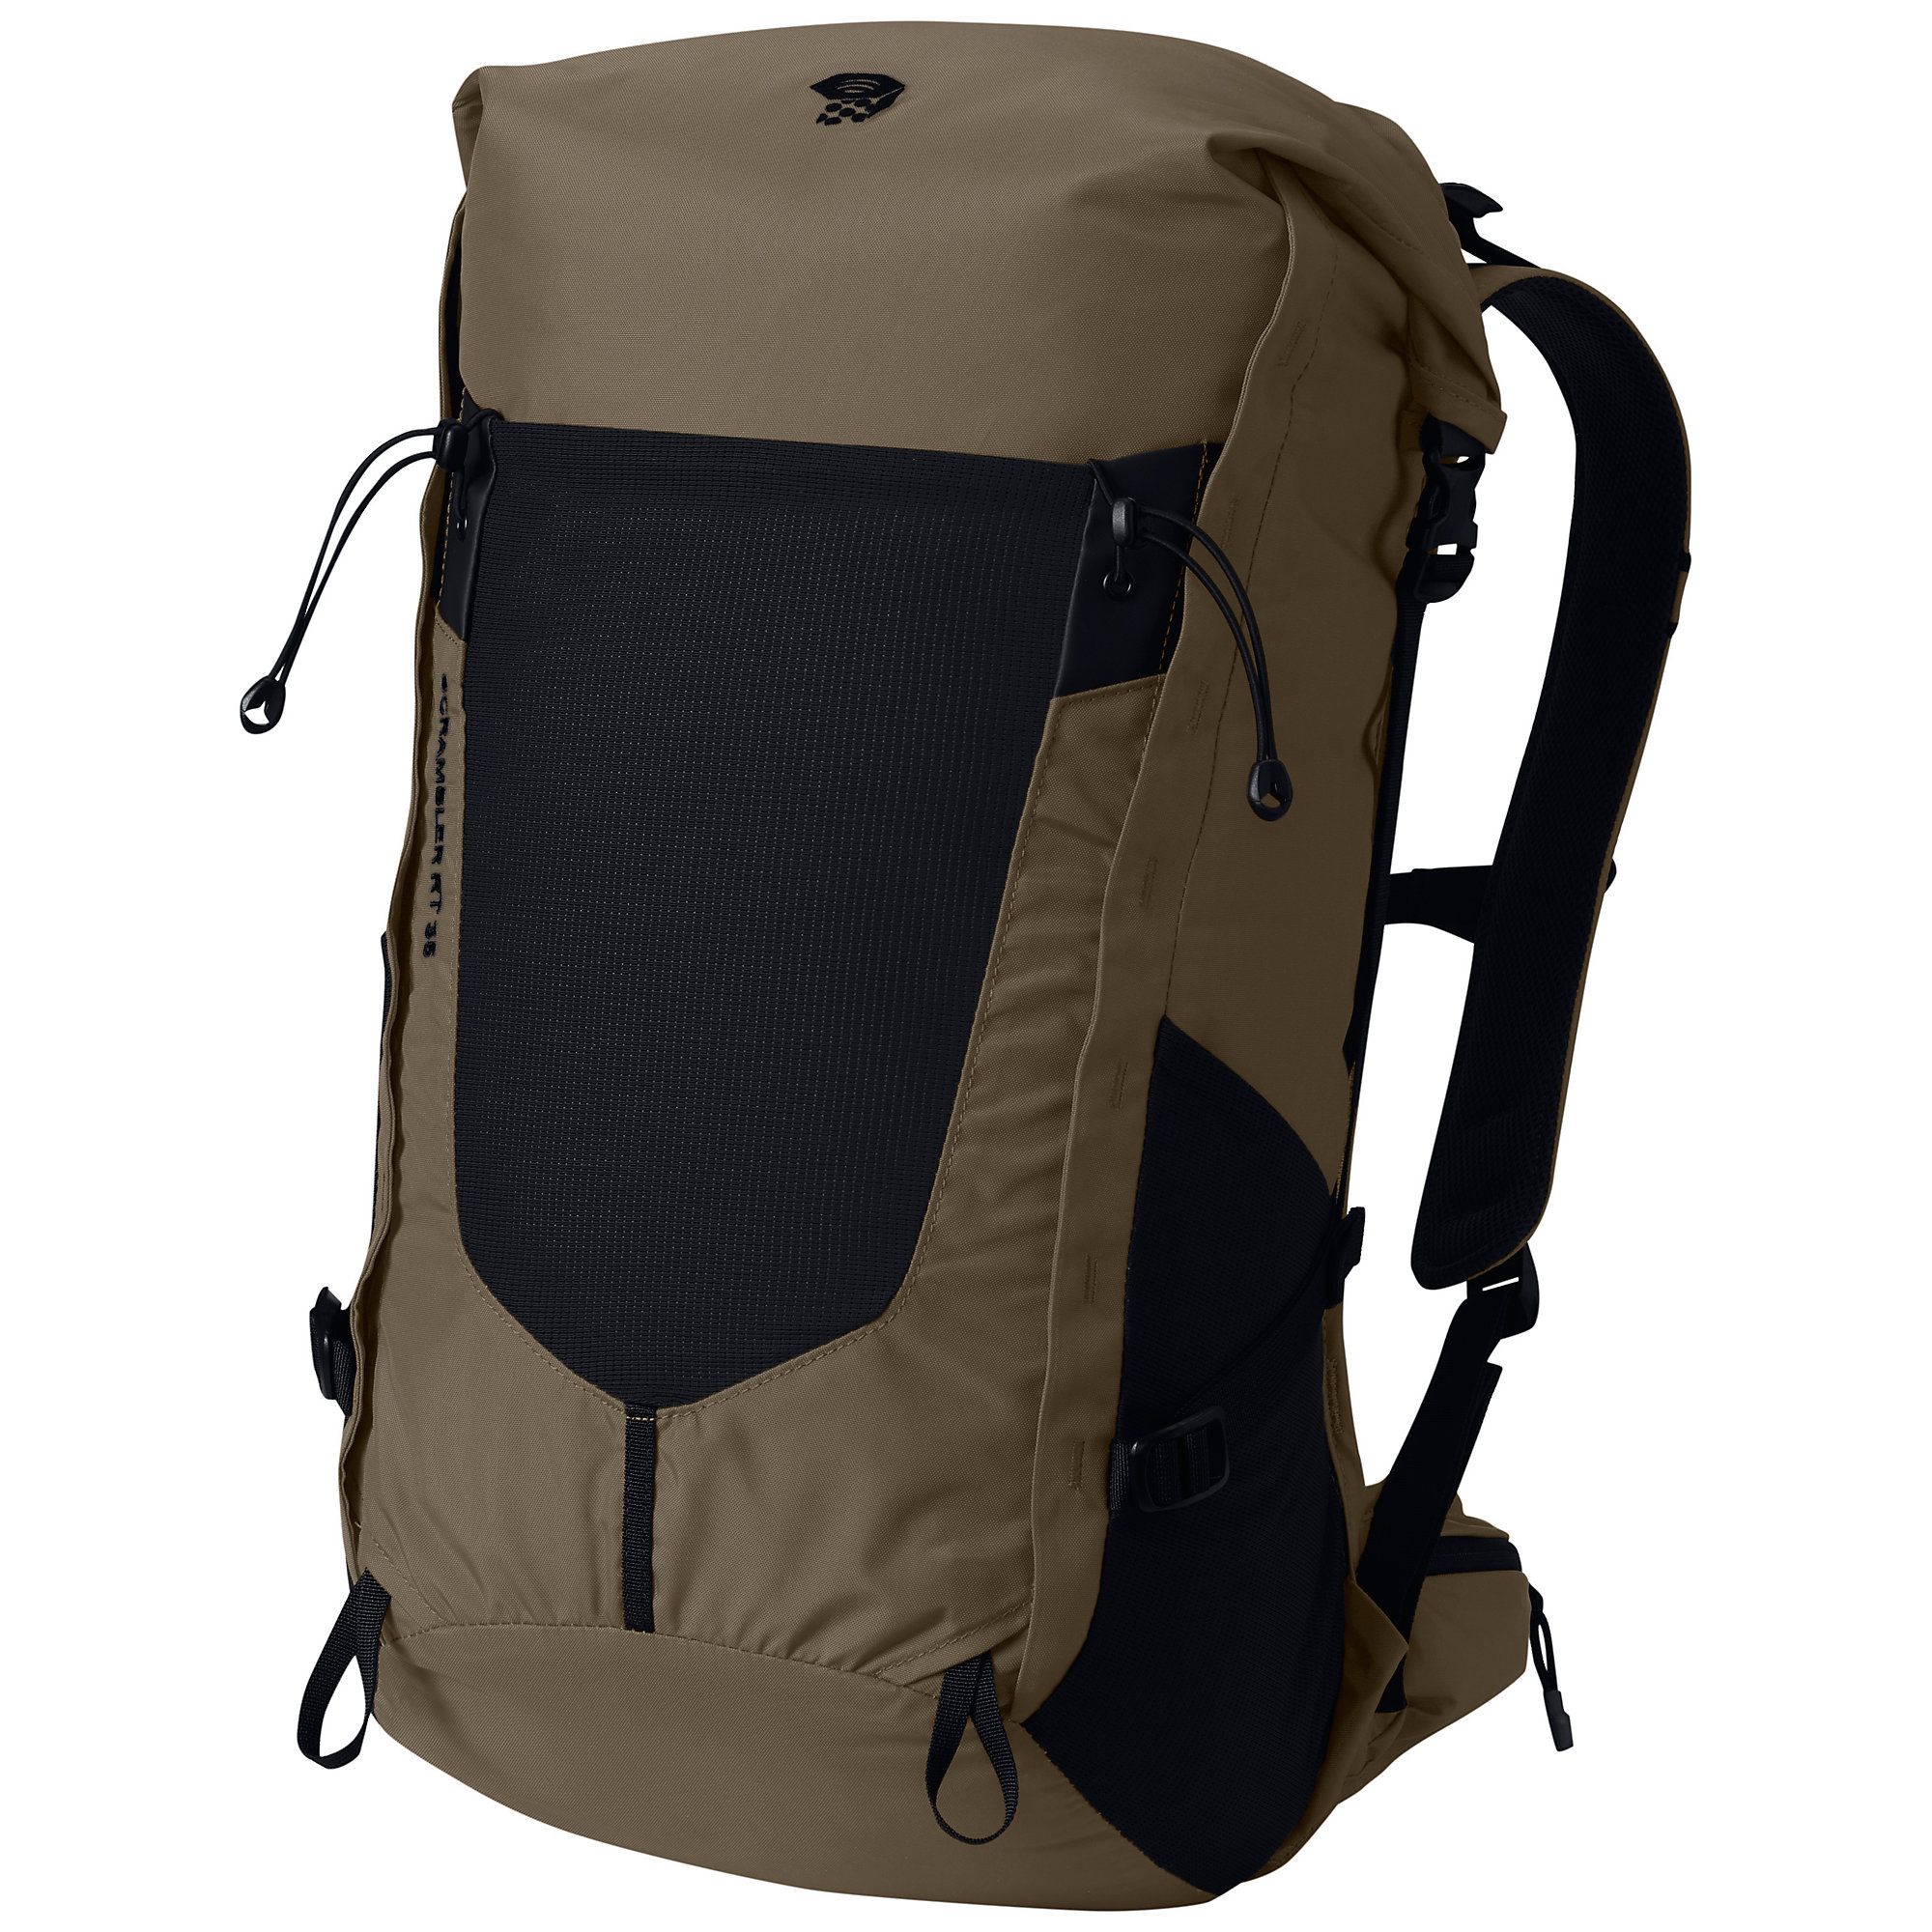 photo: Mountain Hardwear Scrambler Roll Top 35 OutDry overnight pack (35-49l)